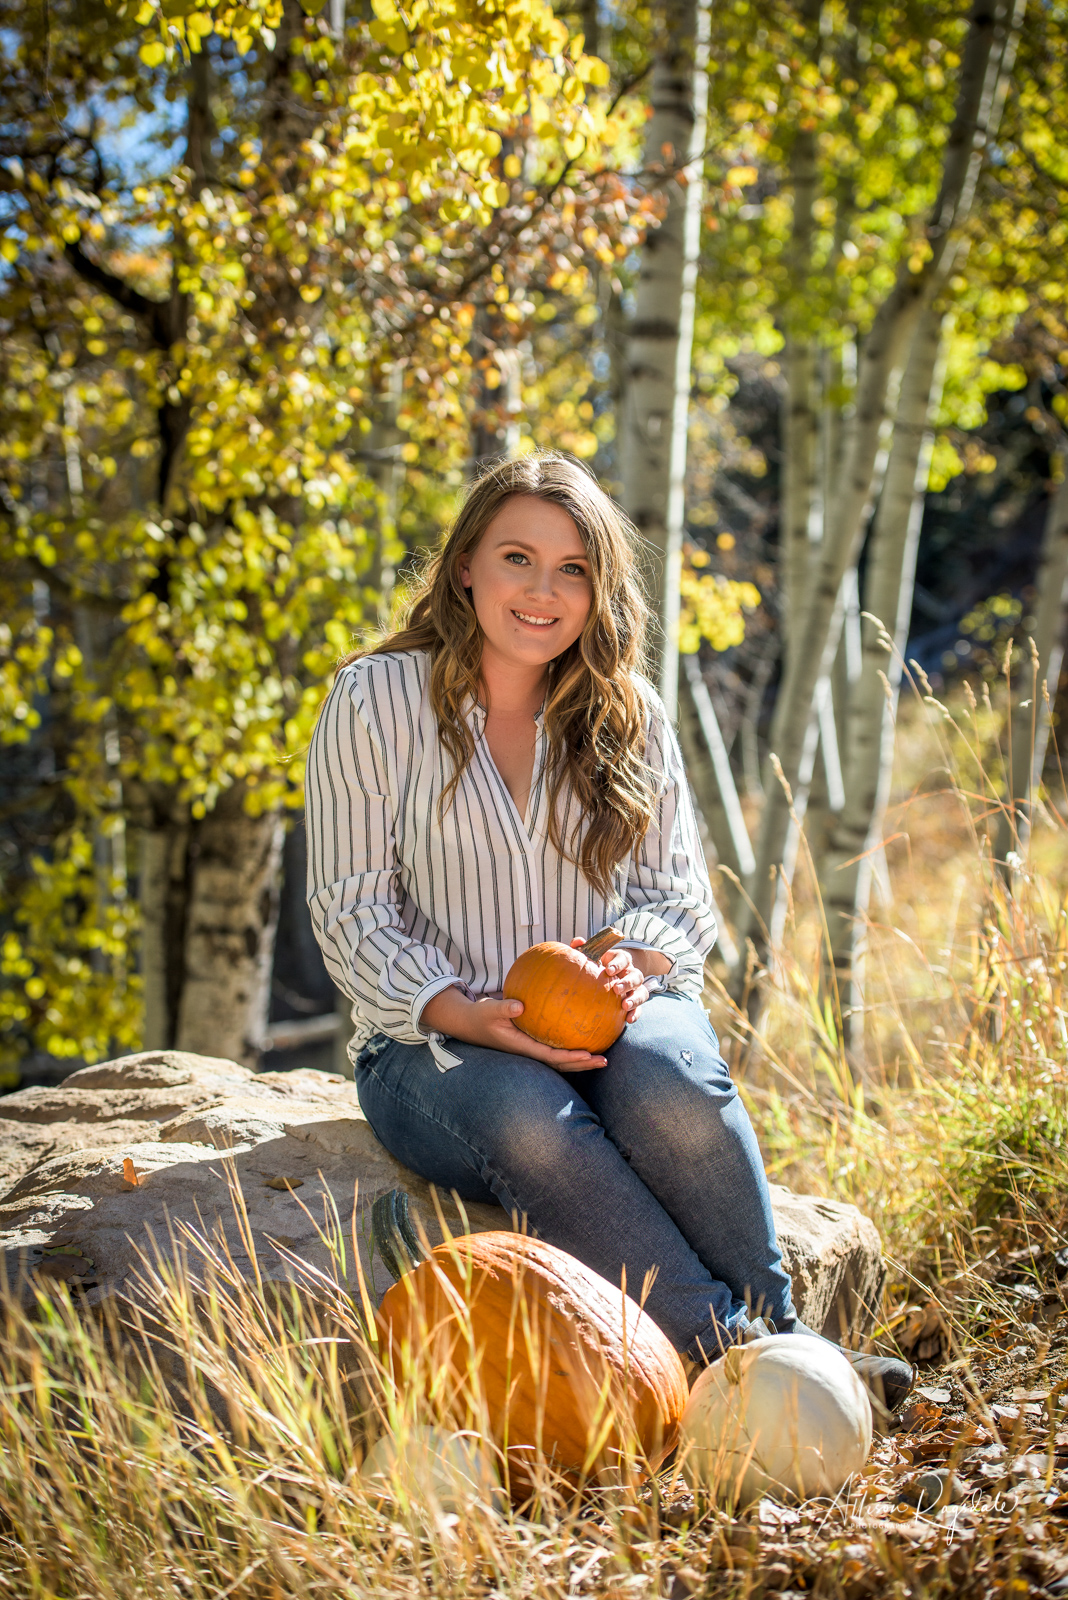 Phipps Fall Family Pictures | Durango Colorado Photographed by Durango Photographer Allison Ragsdale Photography. Fall Color Family Portraits